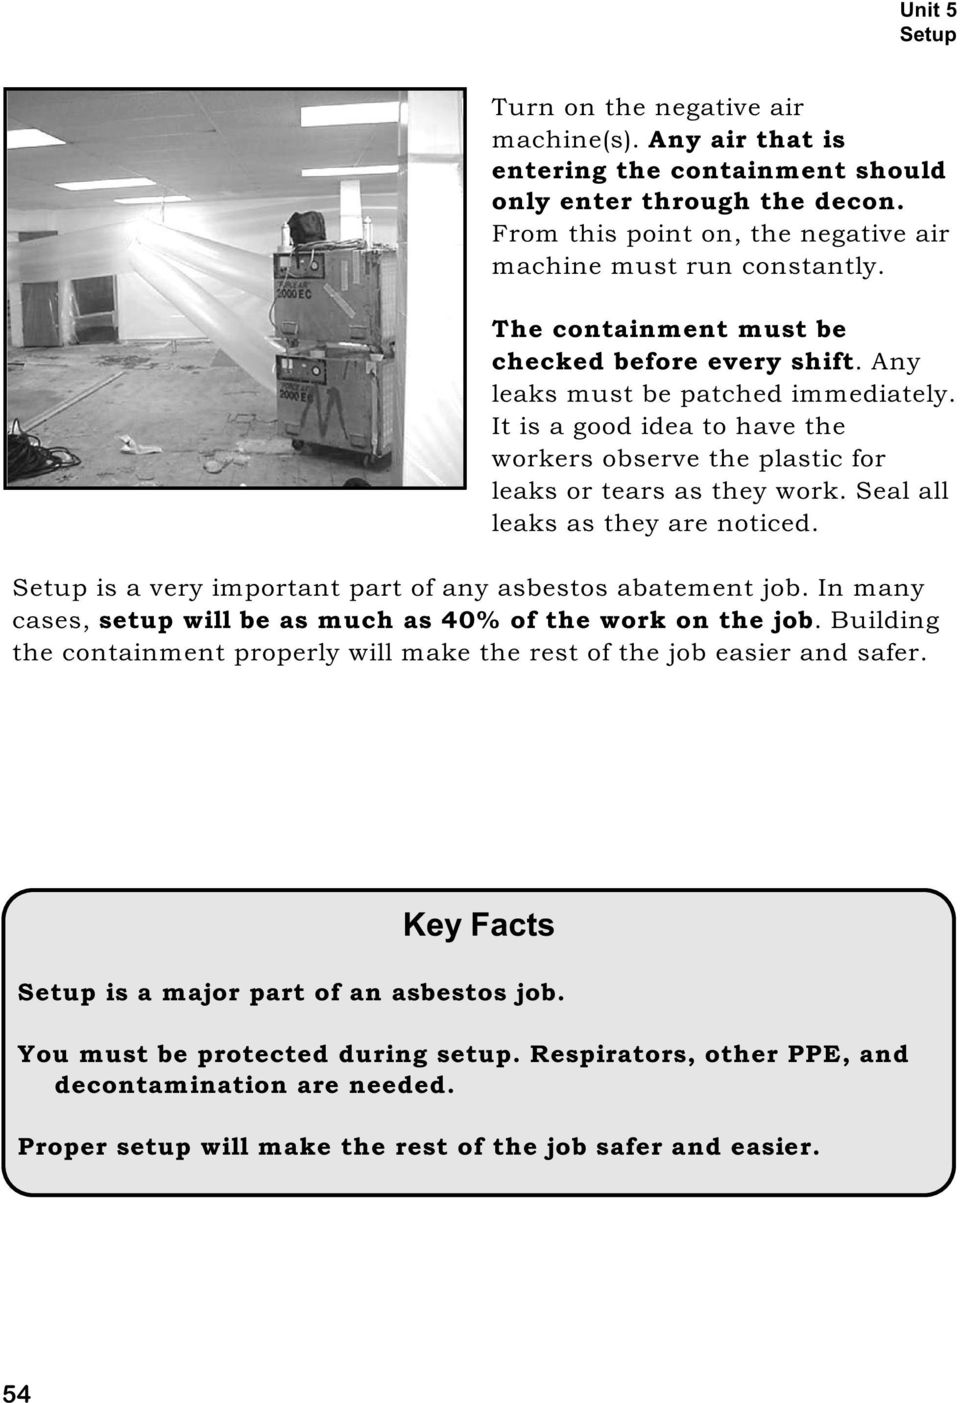 Seal all leaks as they are noticed. Setup is a very important part of any asbestos abatement job. In many cases, setup will be as much as 40% of the work on the job.